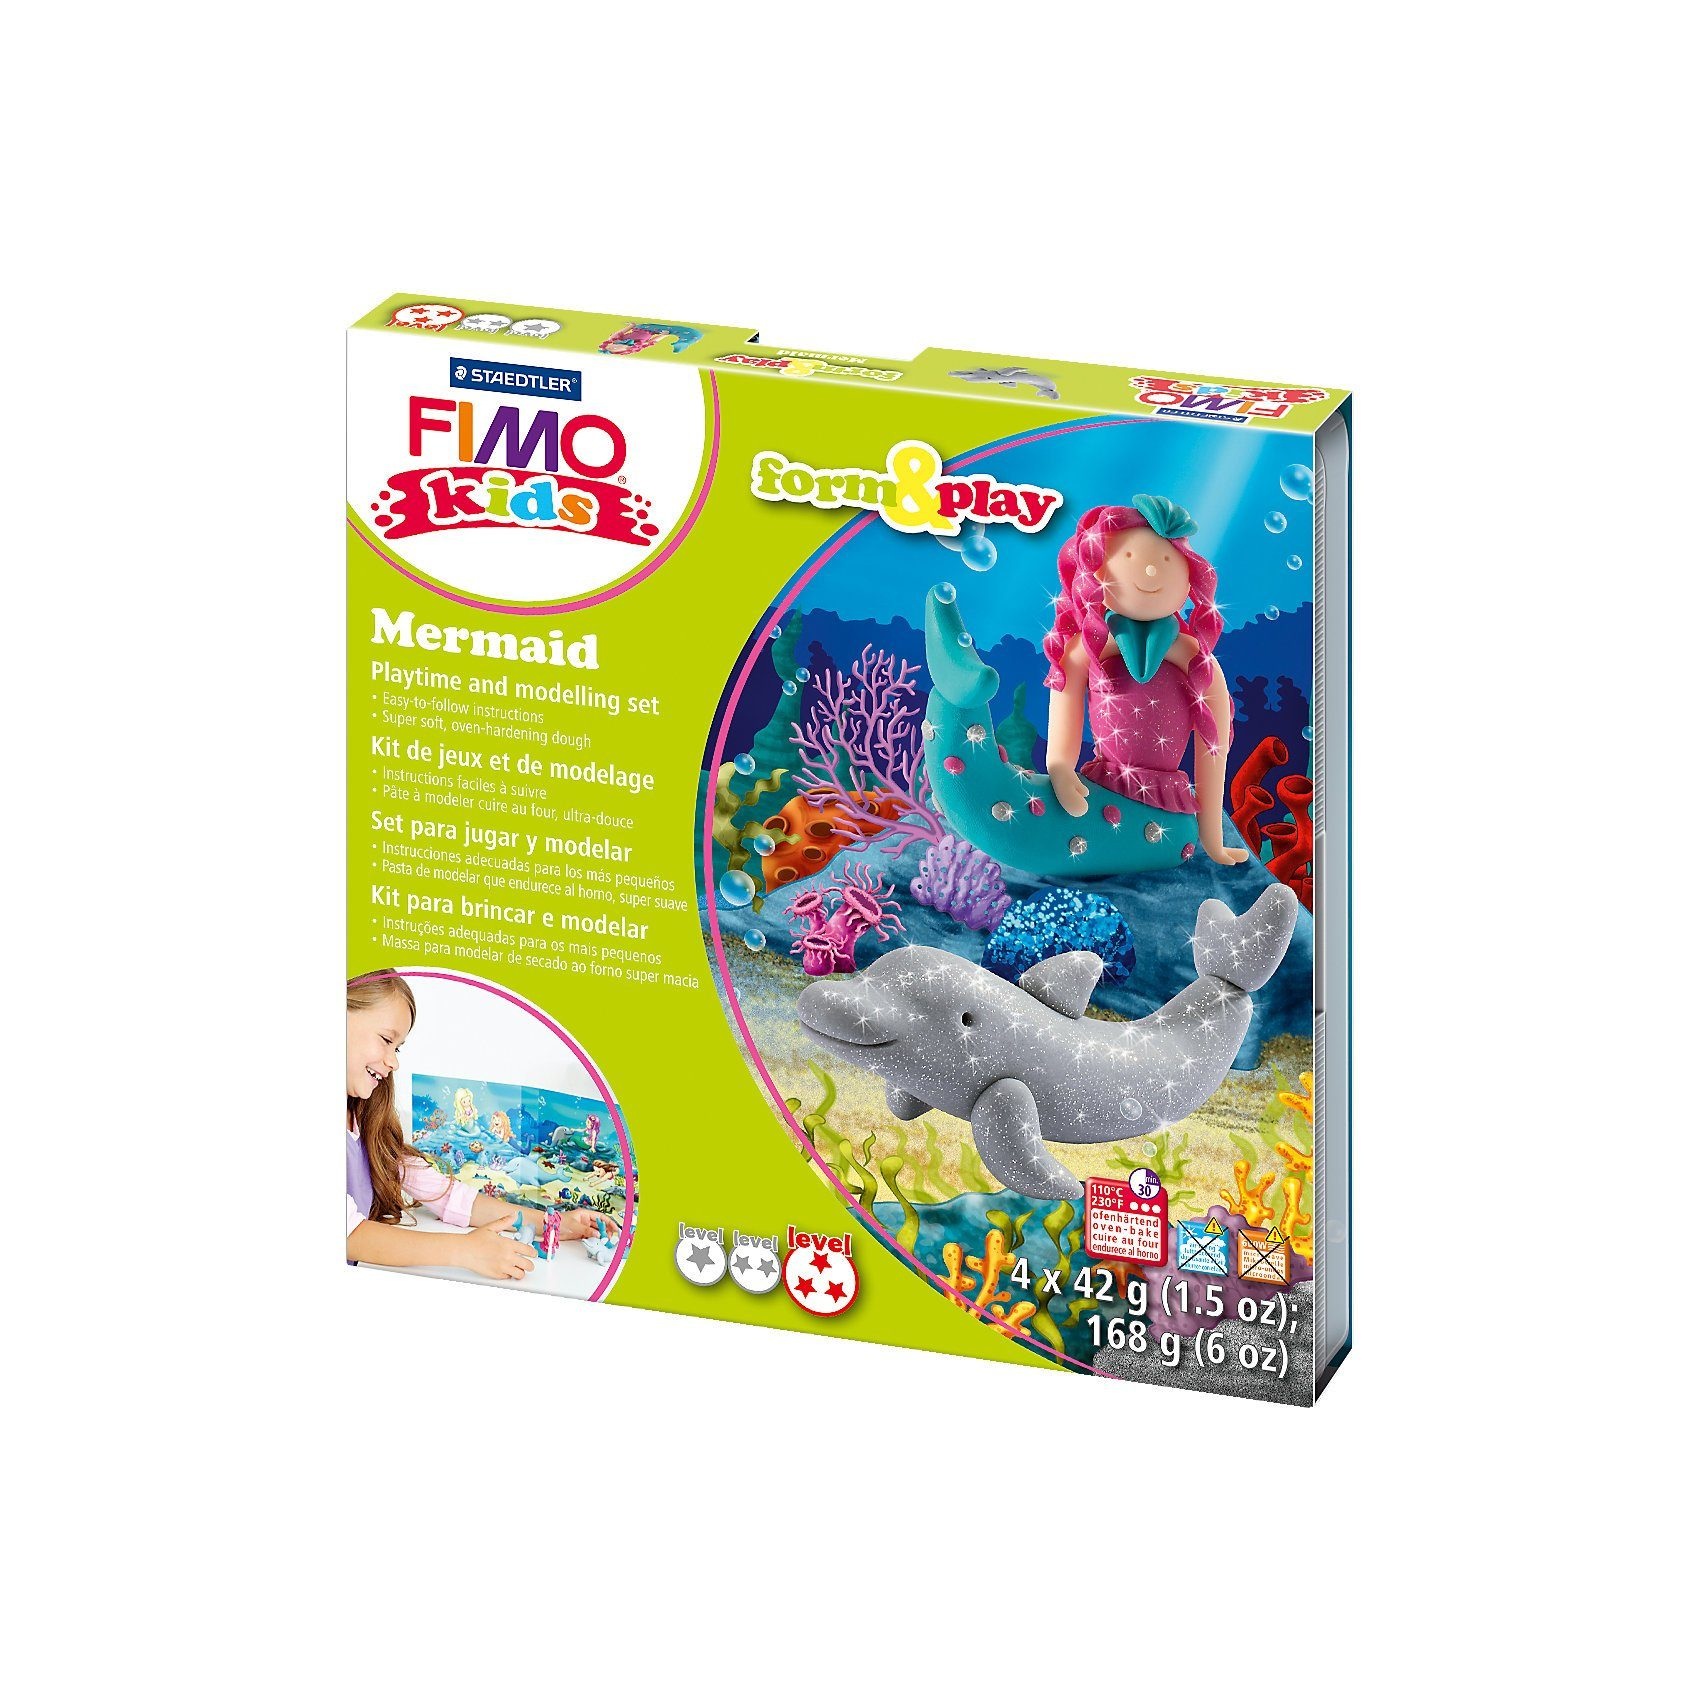 FIMO kids Form & Play Mermaid